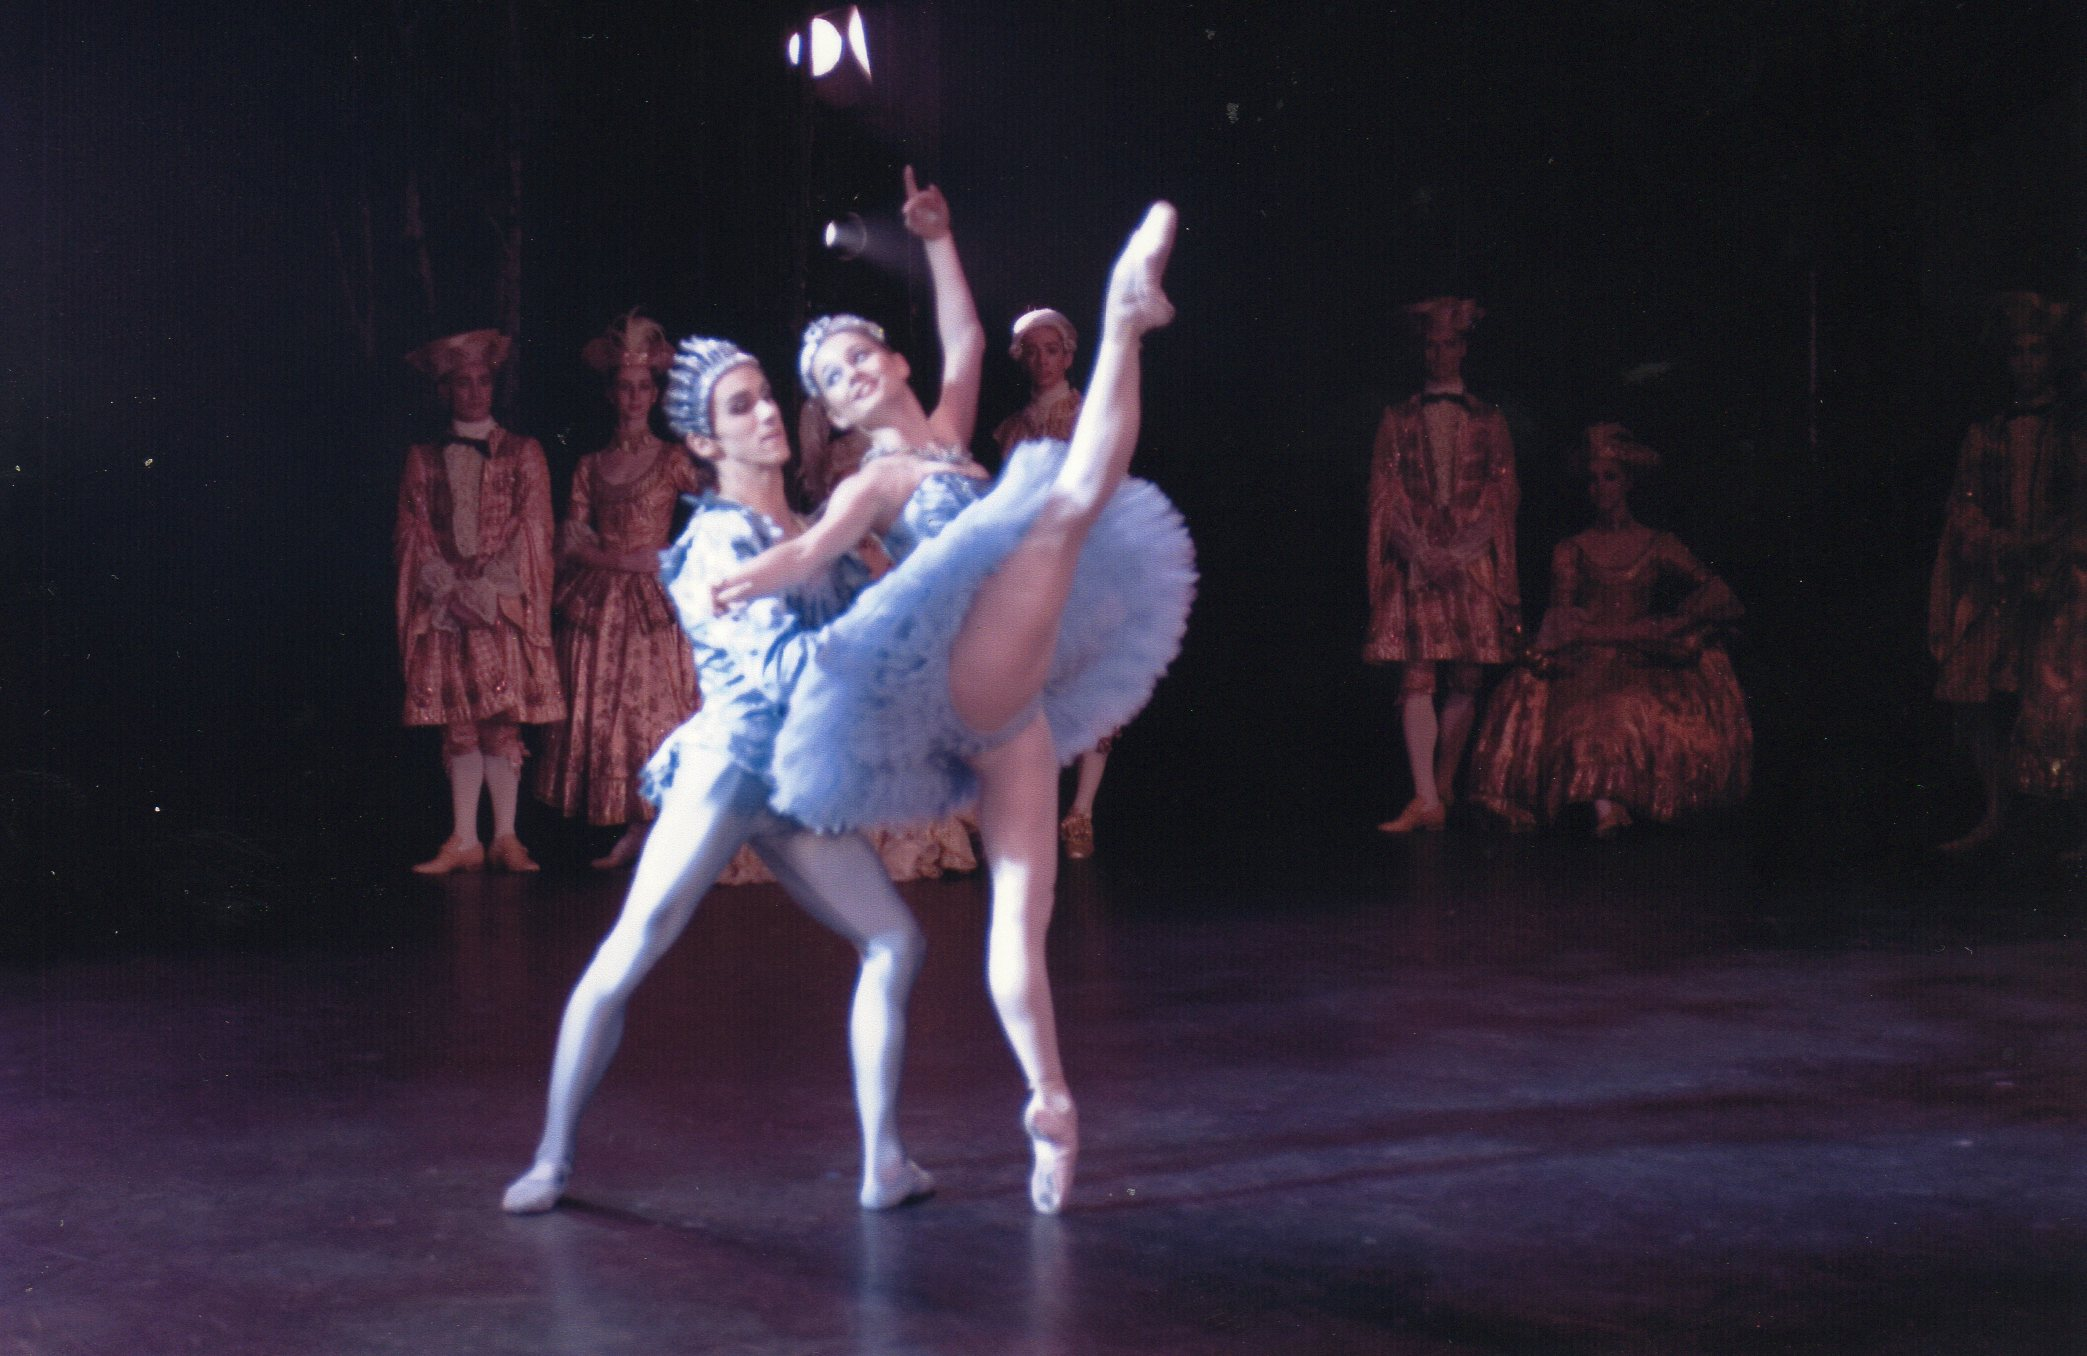 Medhi Angot supporting female ballet dancer during performance